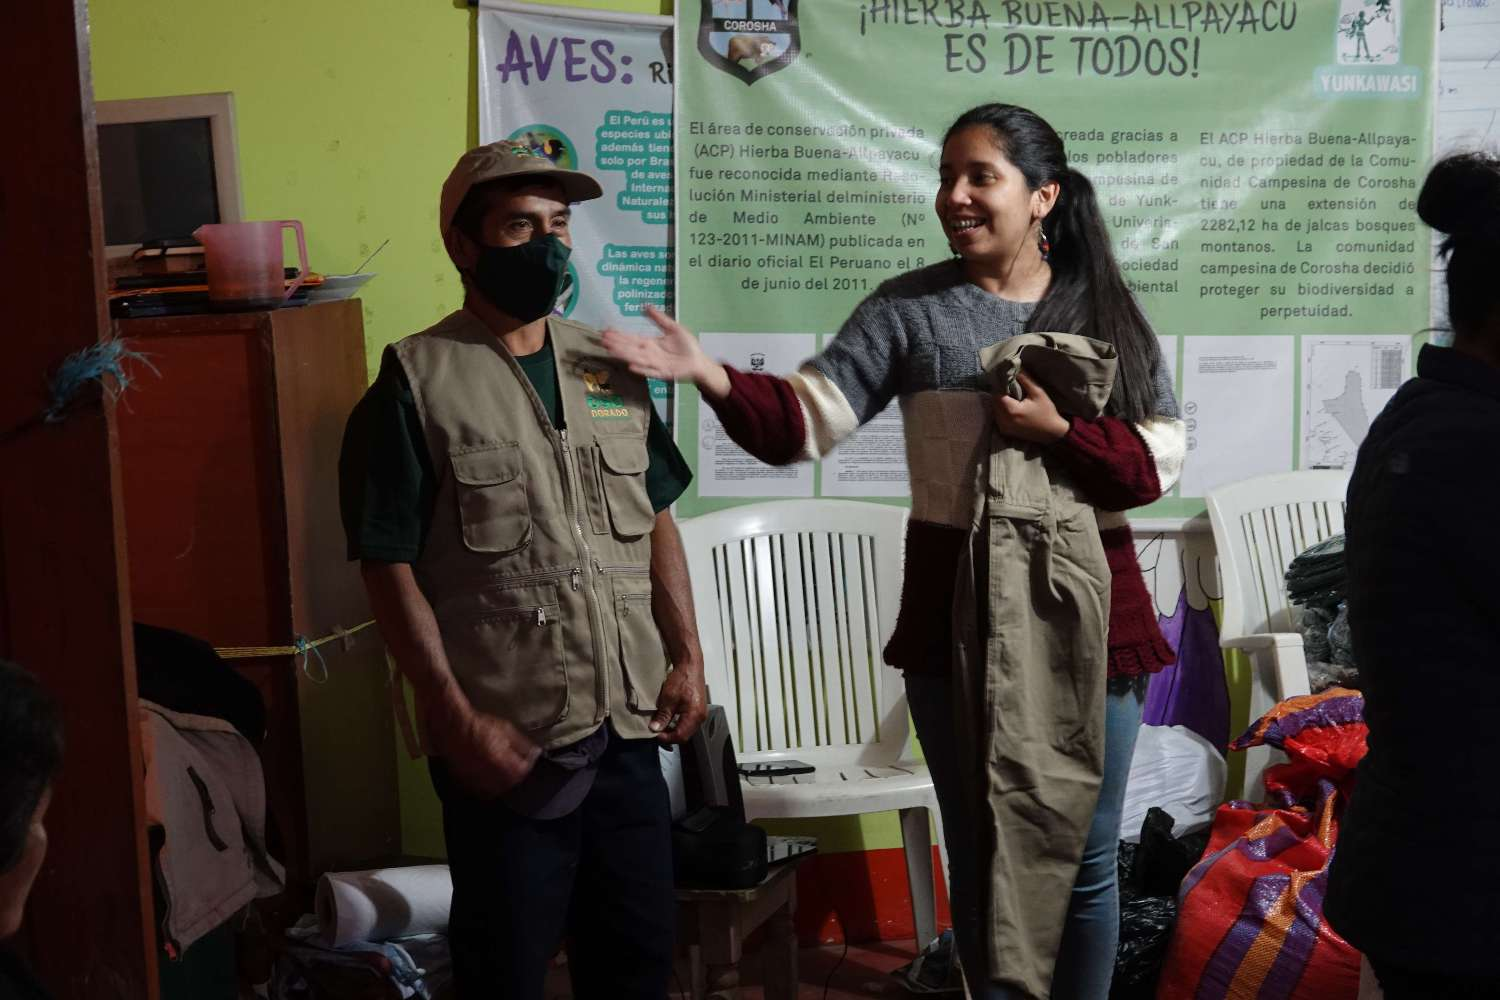 Consolidation of the Oso Dorado (Golden Bear) Tourism Association in Corosha into an alliance for conservation and management of the Amazonas region of Peru